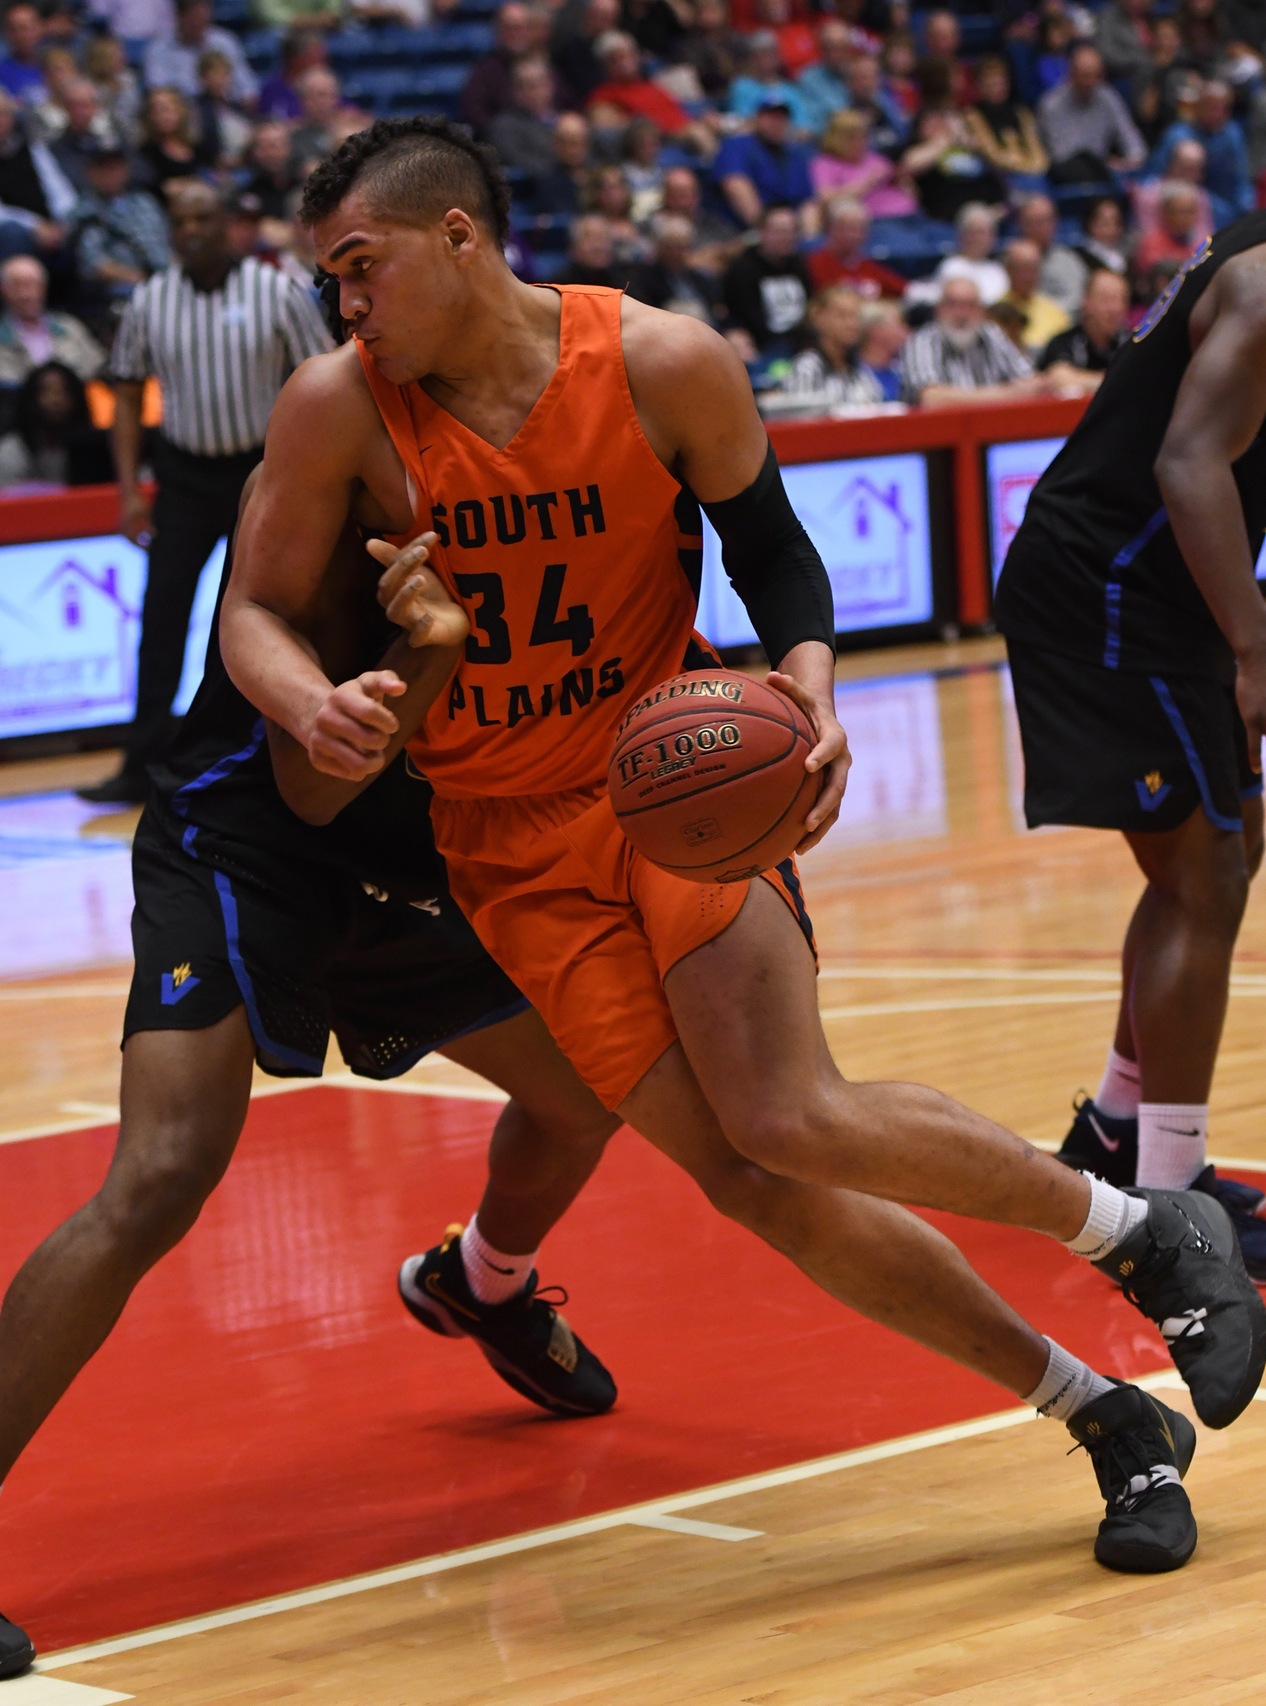 No. 2 South Plains falls to No. 3 Vincennes 85-67 Friday in Kansas